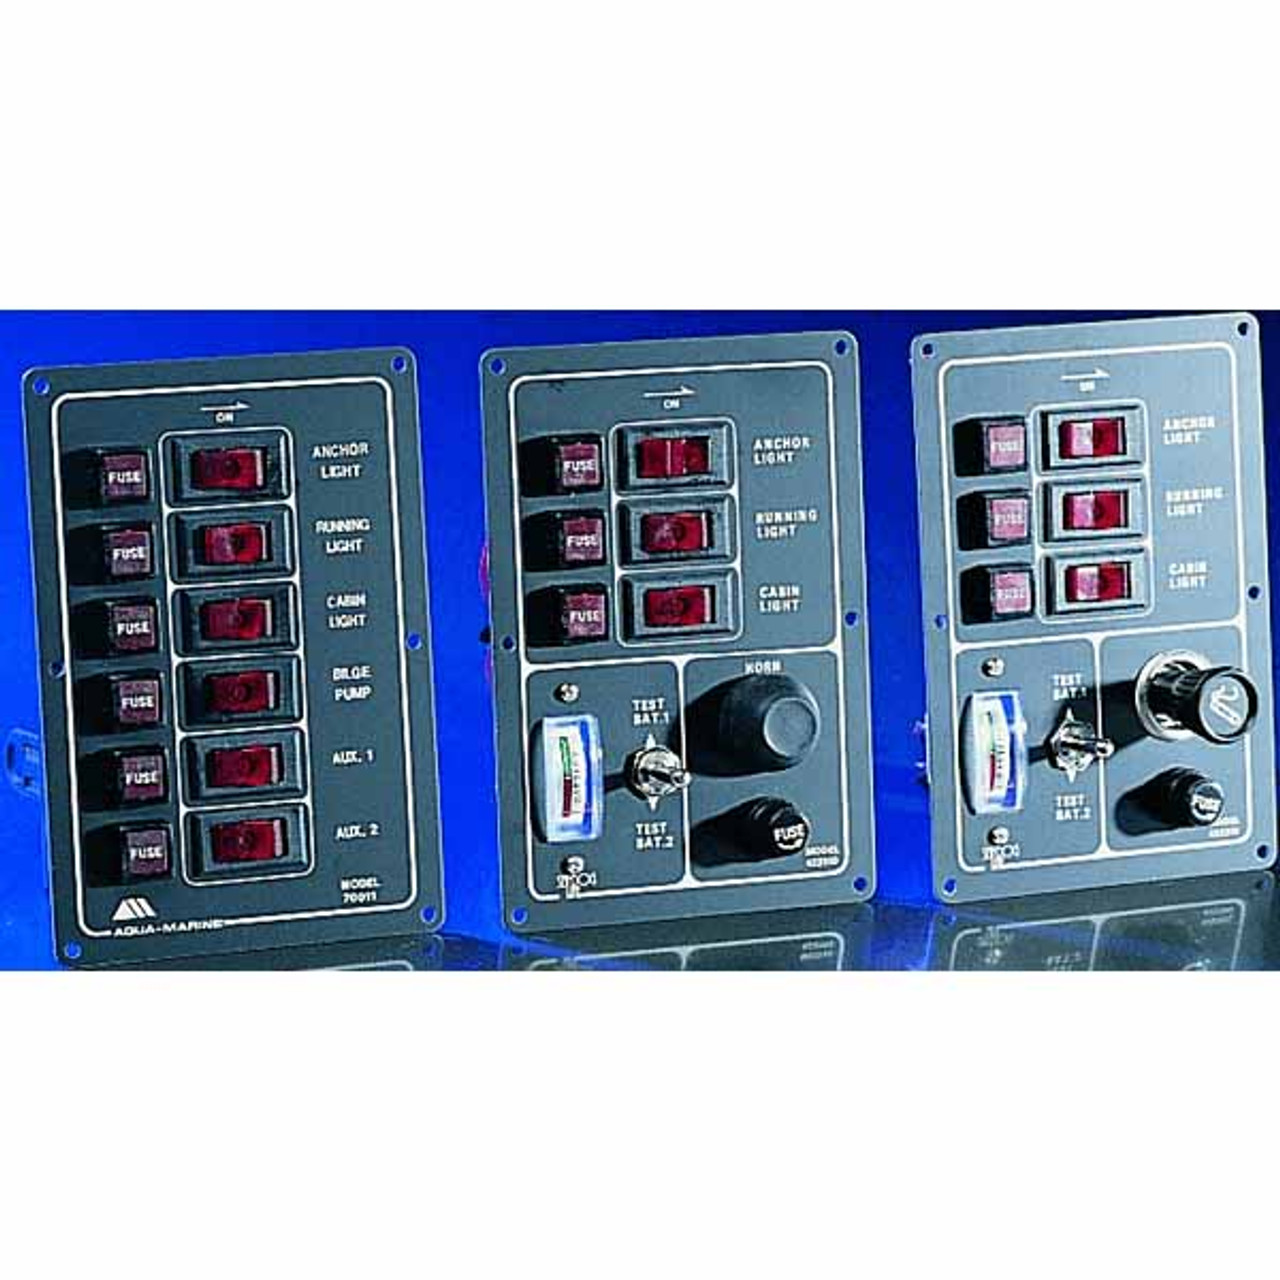 Energy On Board Gt Electrical Panels Gt Ac Gt Panel 4 Circuit Breakers